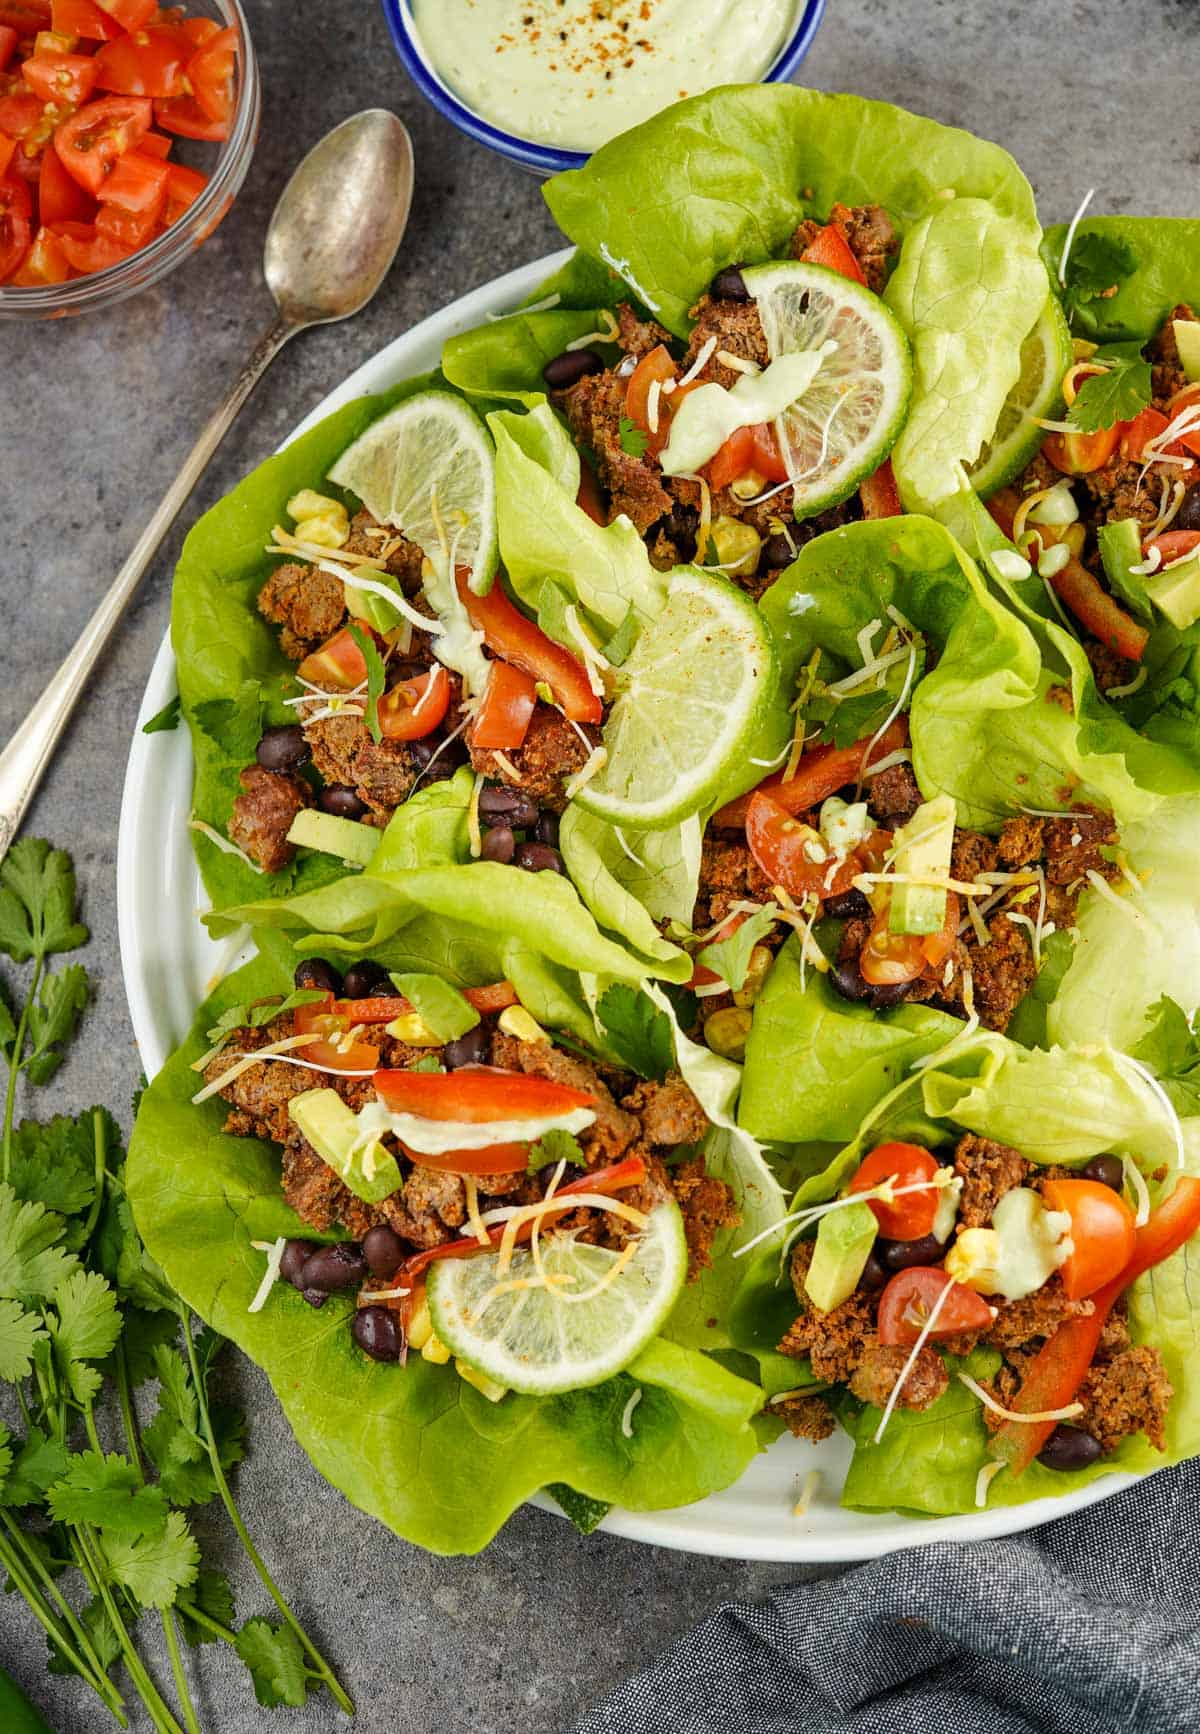 A plate full of Taco Lettuce Wraps filled with ground beef, diced tomatoes, limes, black beans, and avocado cream sauce